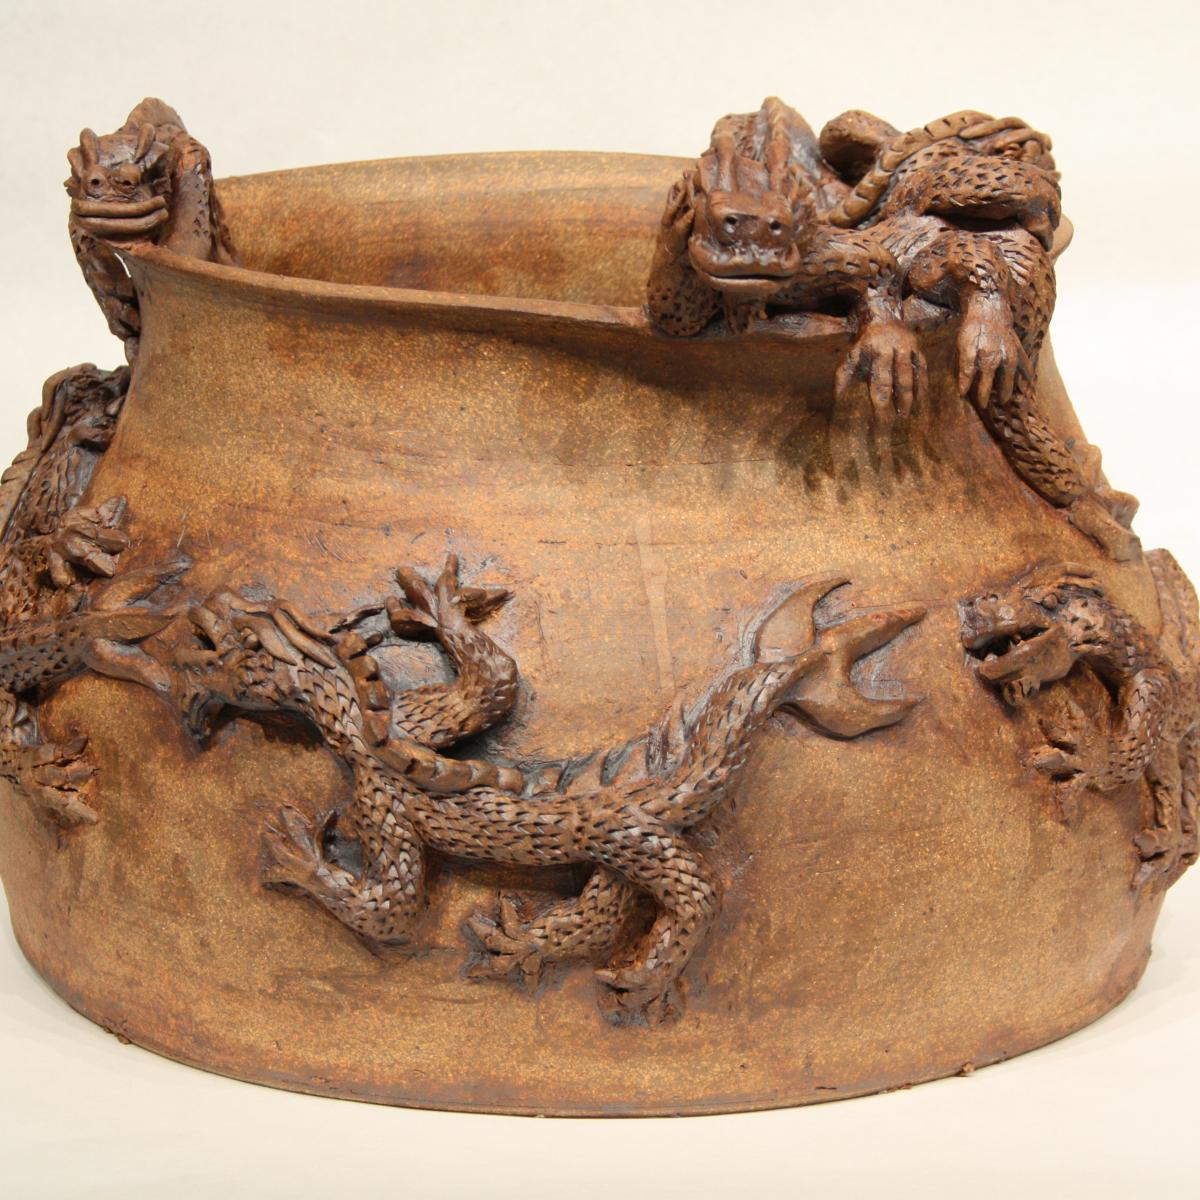 Brown pottery with dragons around it.